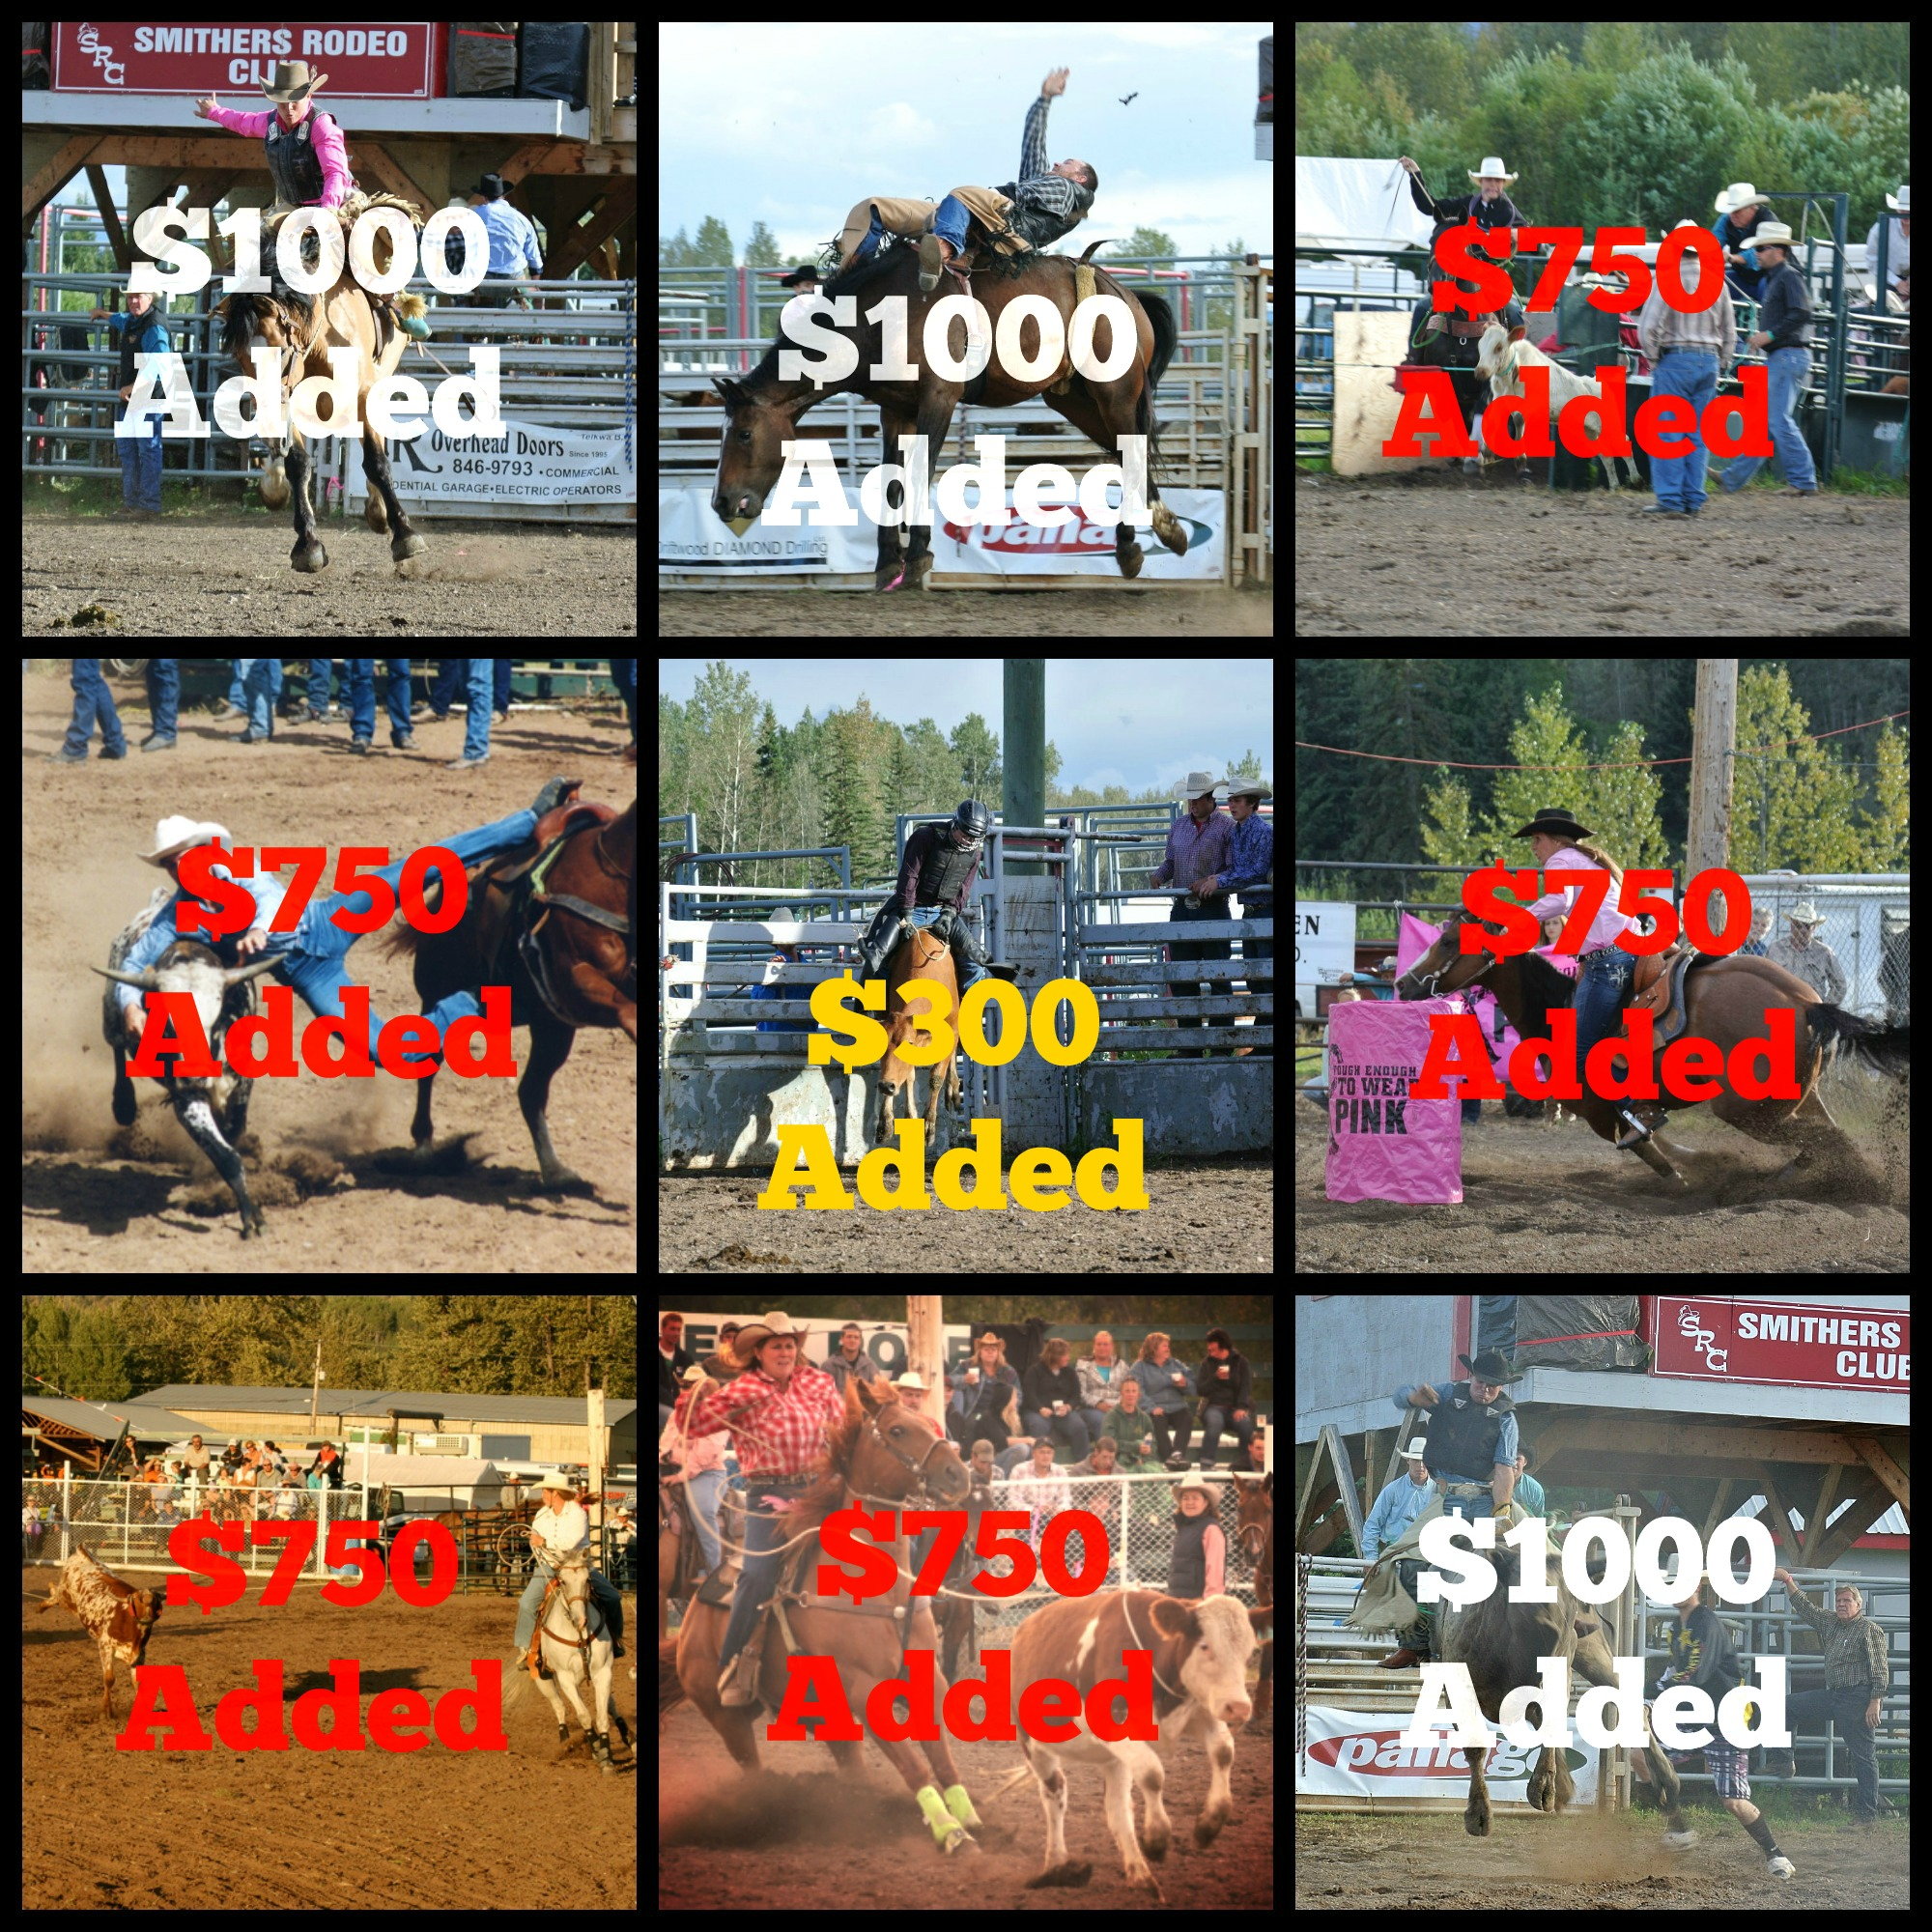 Smithers Rodeo Club - Rodeo Events